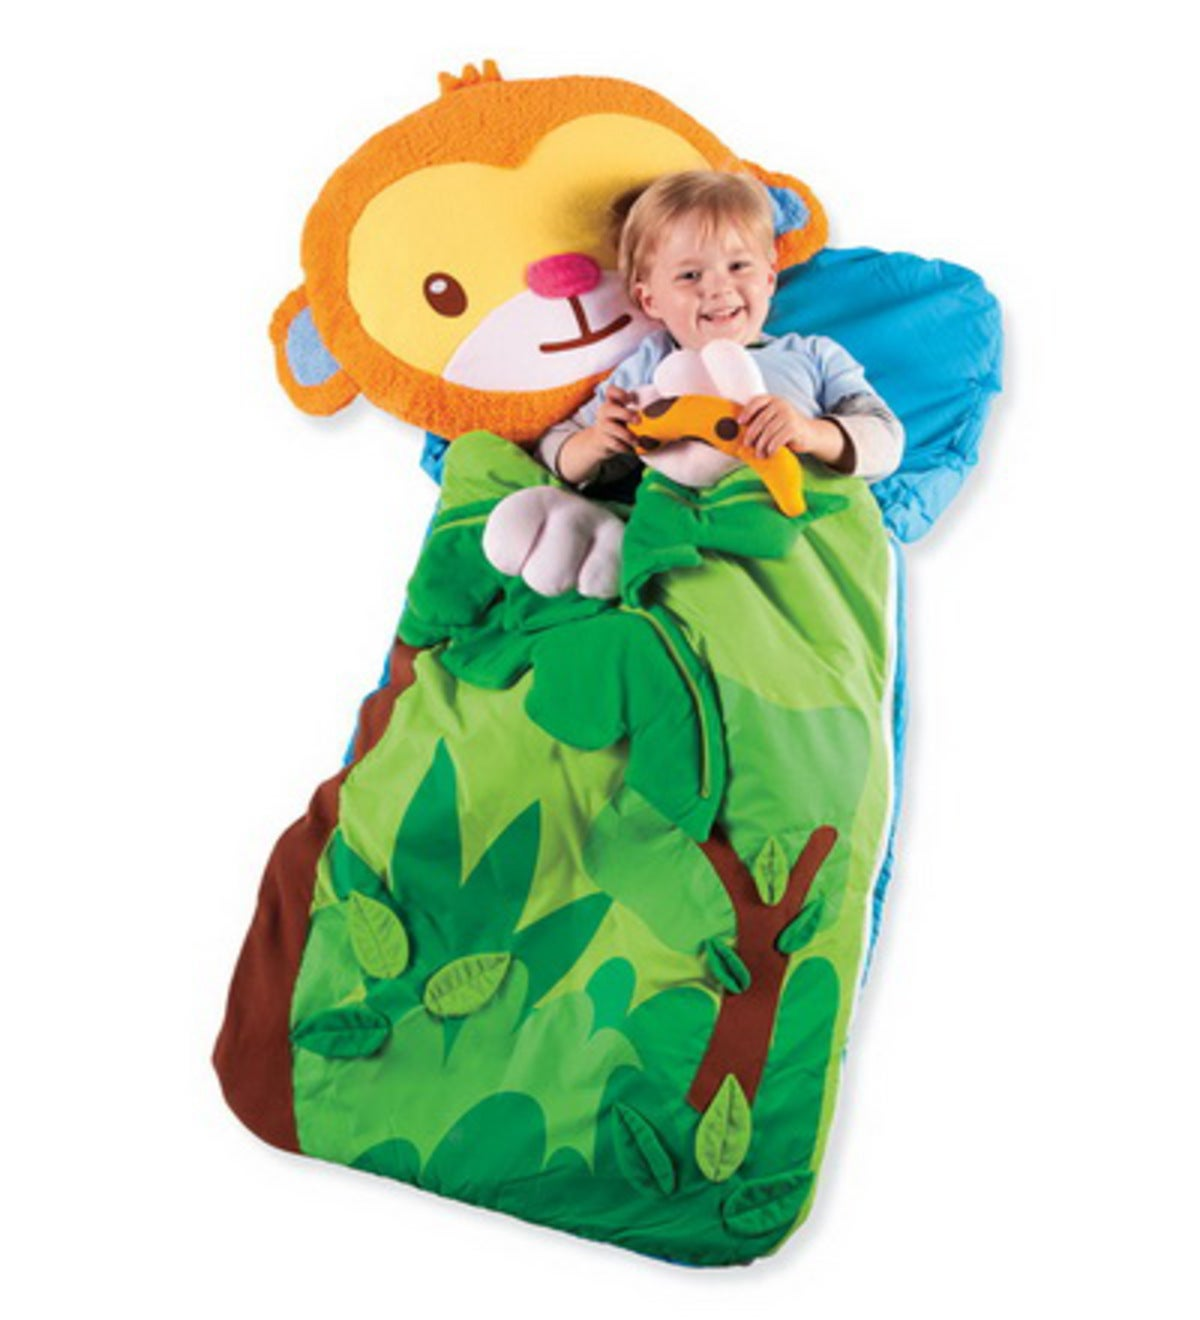 Sillies Sleeping Bag with Plush Pillow - Monkey with Banana